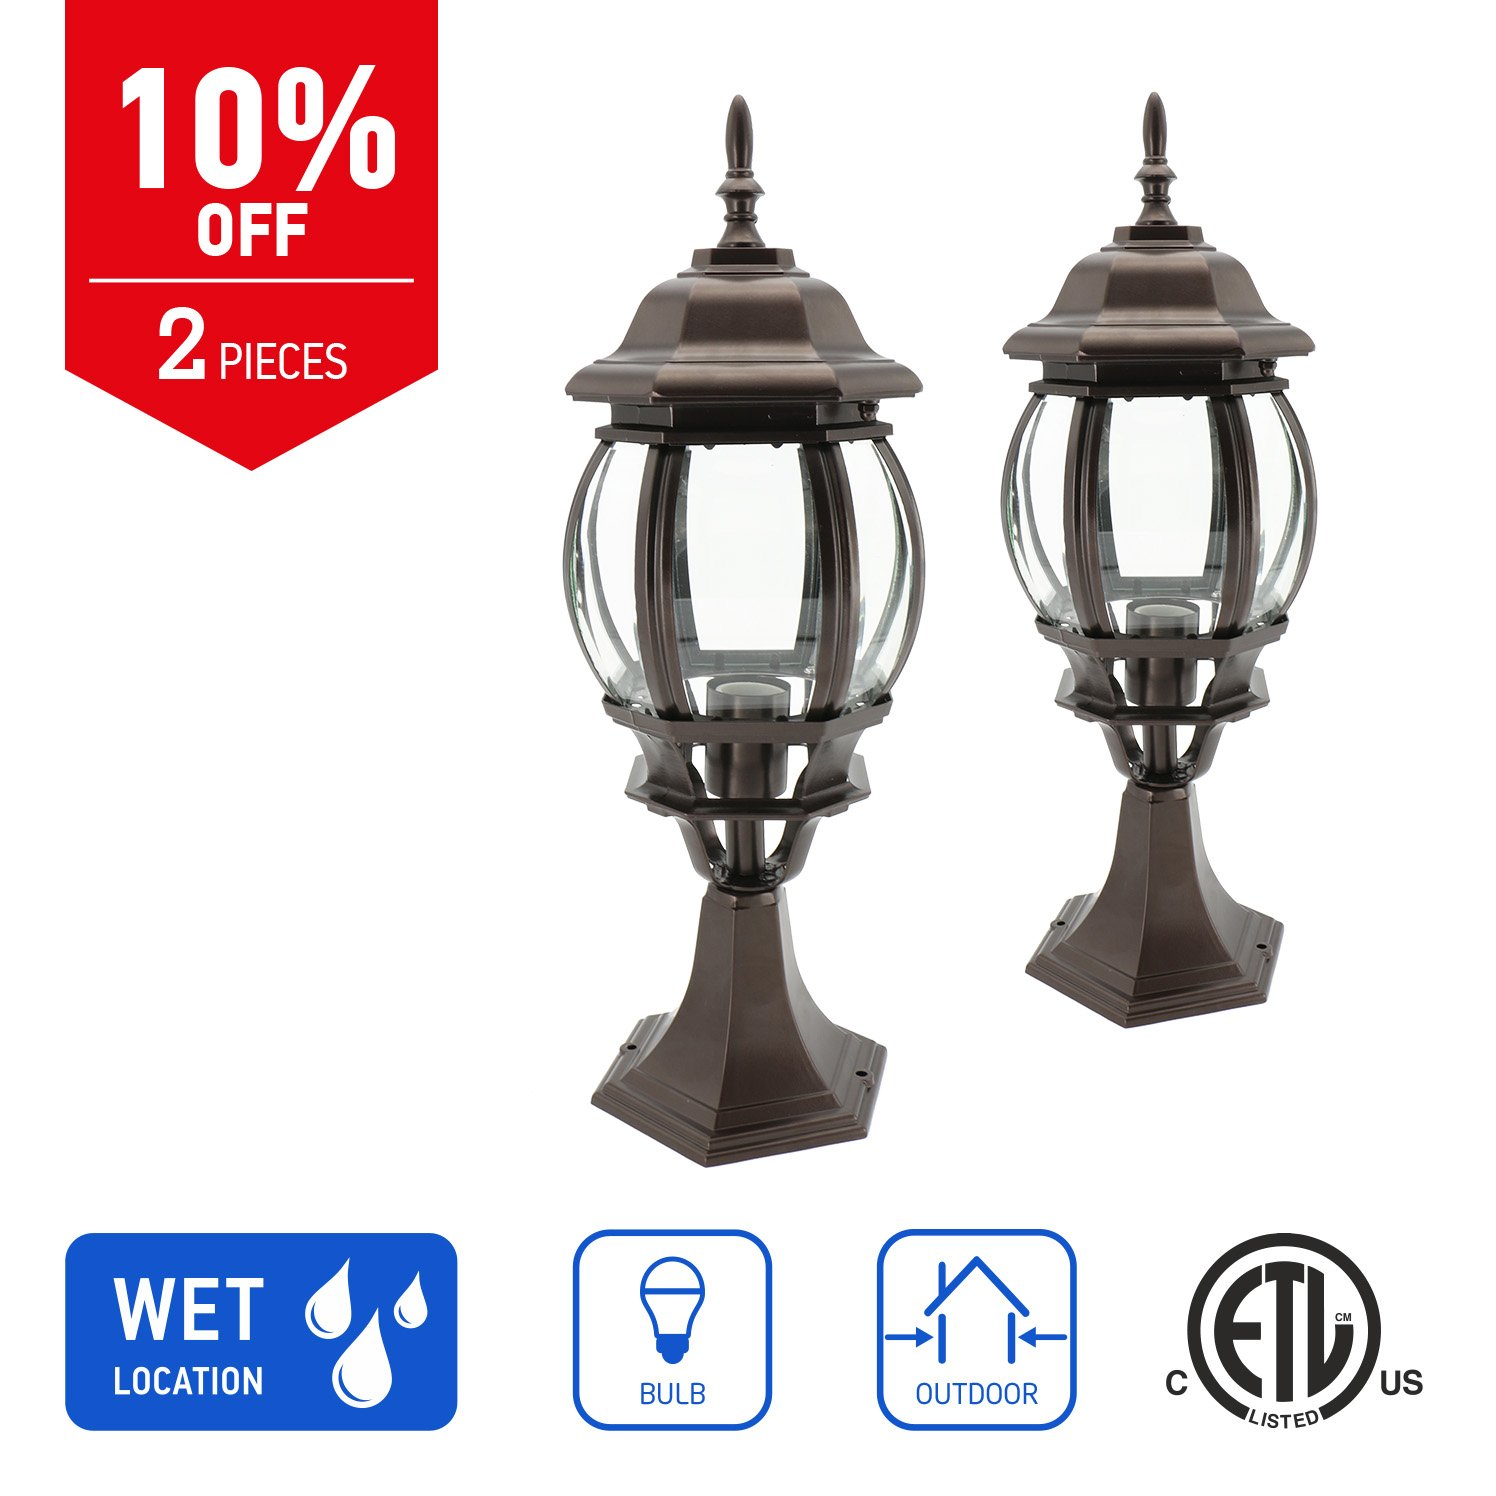 in Home 1-Light Outdoor Post Lantern L08 Series Traditional Design Bronze Finish Clear Glass Shade (2 Pack), ETL Listed